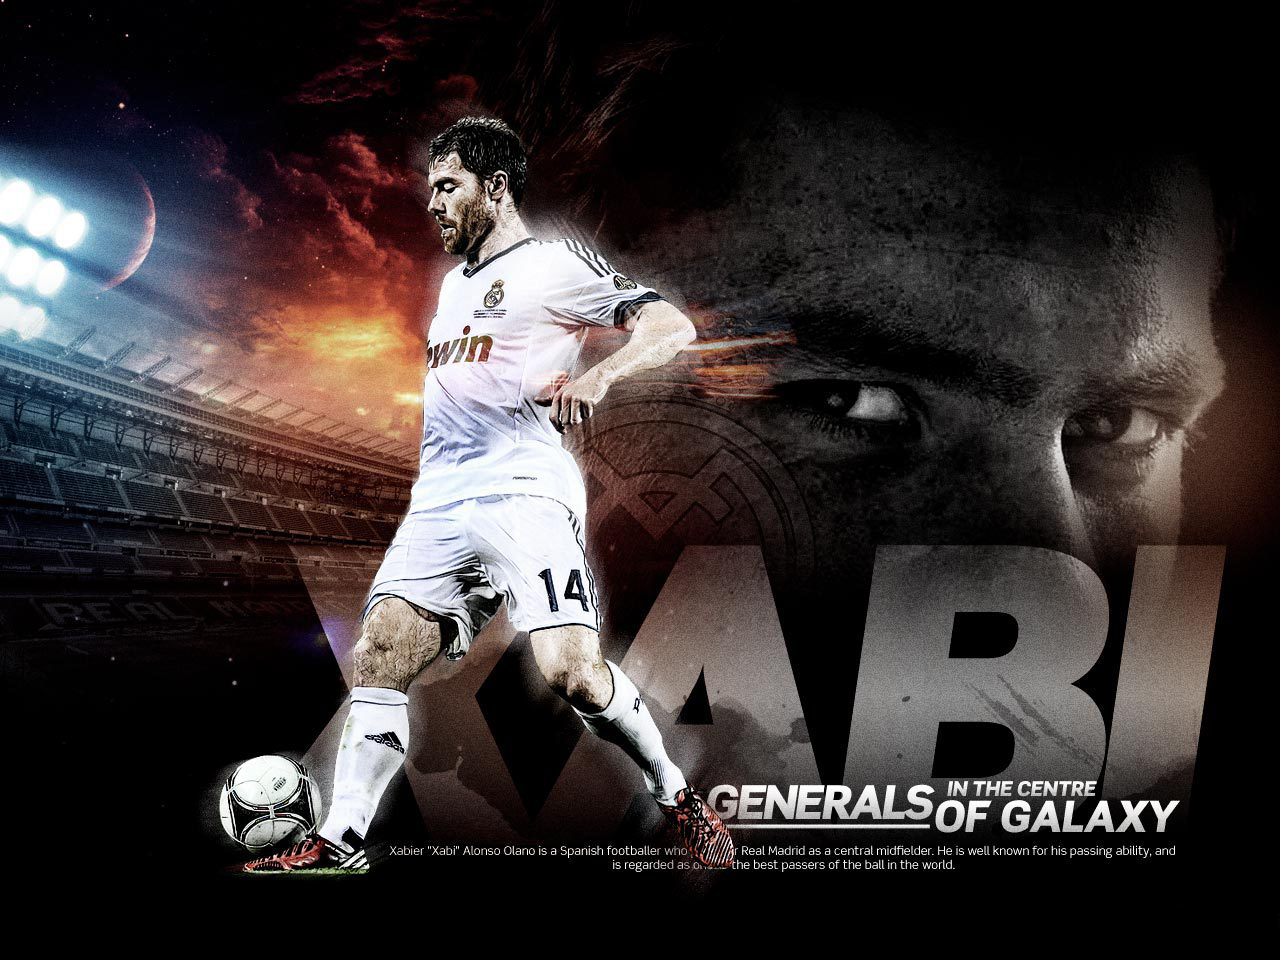 http://1.bp.blogspot.com/-XUAaUrwRkbU/UQ4xkNVldWI/AAAAAAAADE8/FokEoheDNcQ/s1600/xabi-alonso-real-madrid-2012-2013-hd-best-wallpapers.jpg